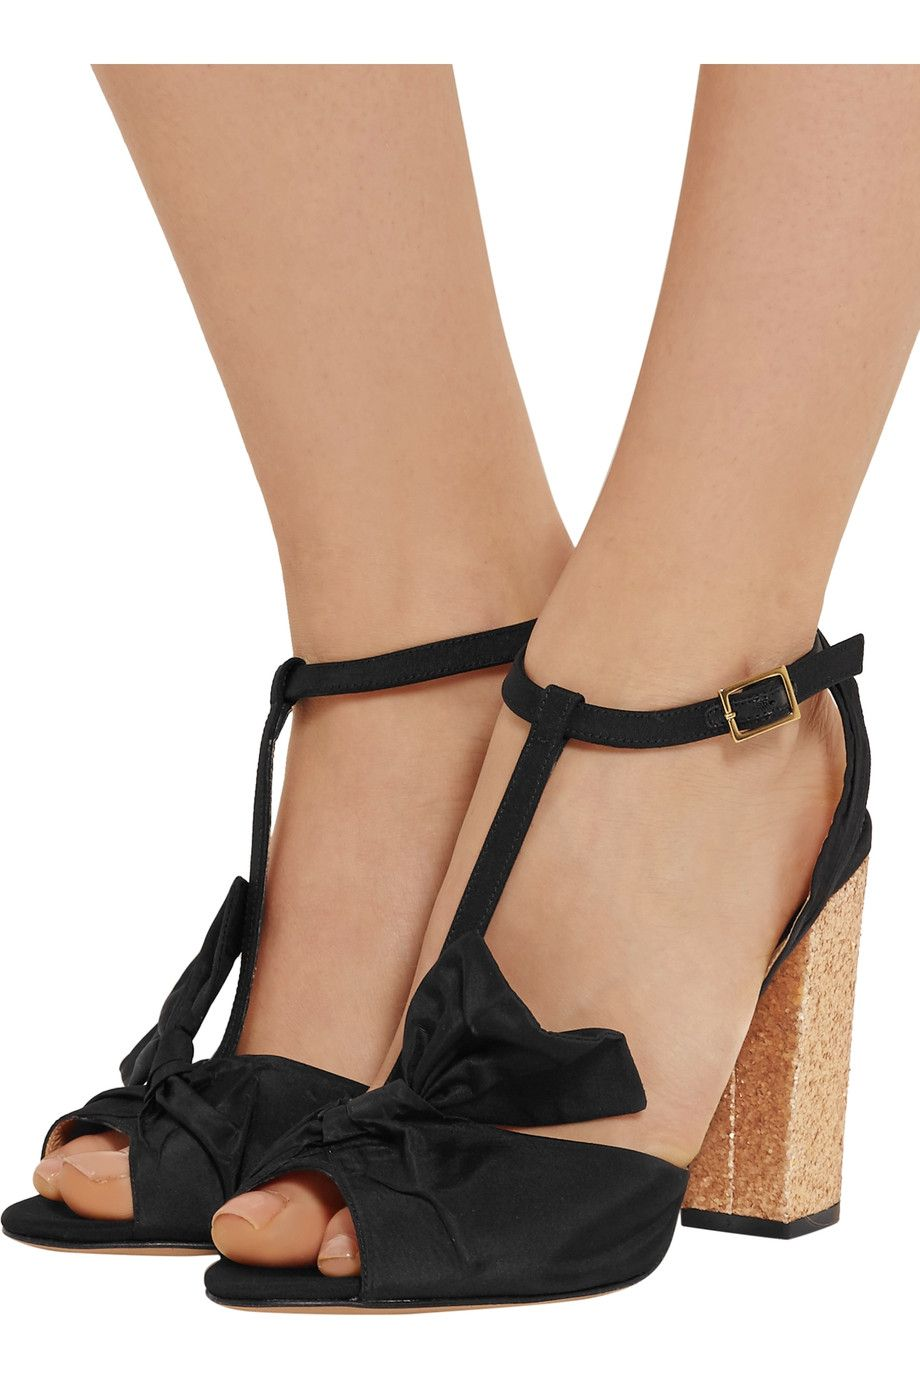 Shop on-sale Charlotte Olympia Odelle bow-embellished faille sandals.  Browse other discount